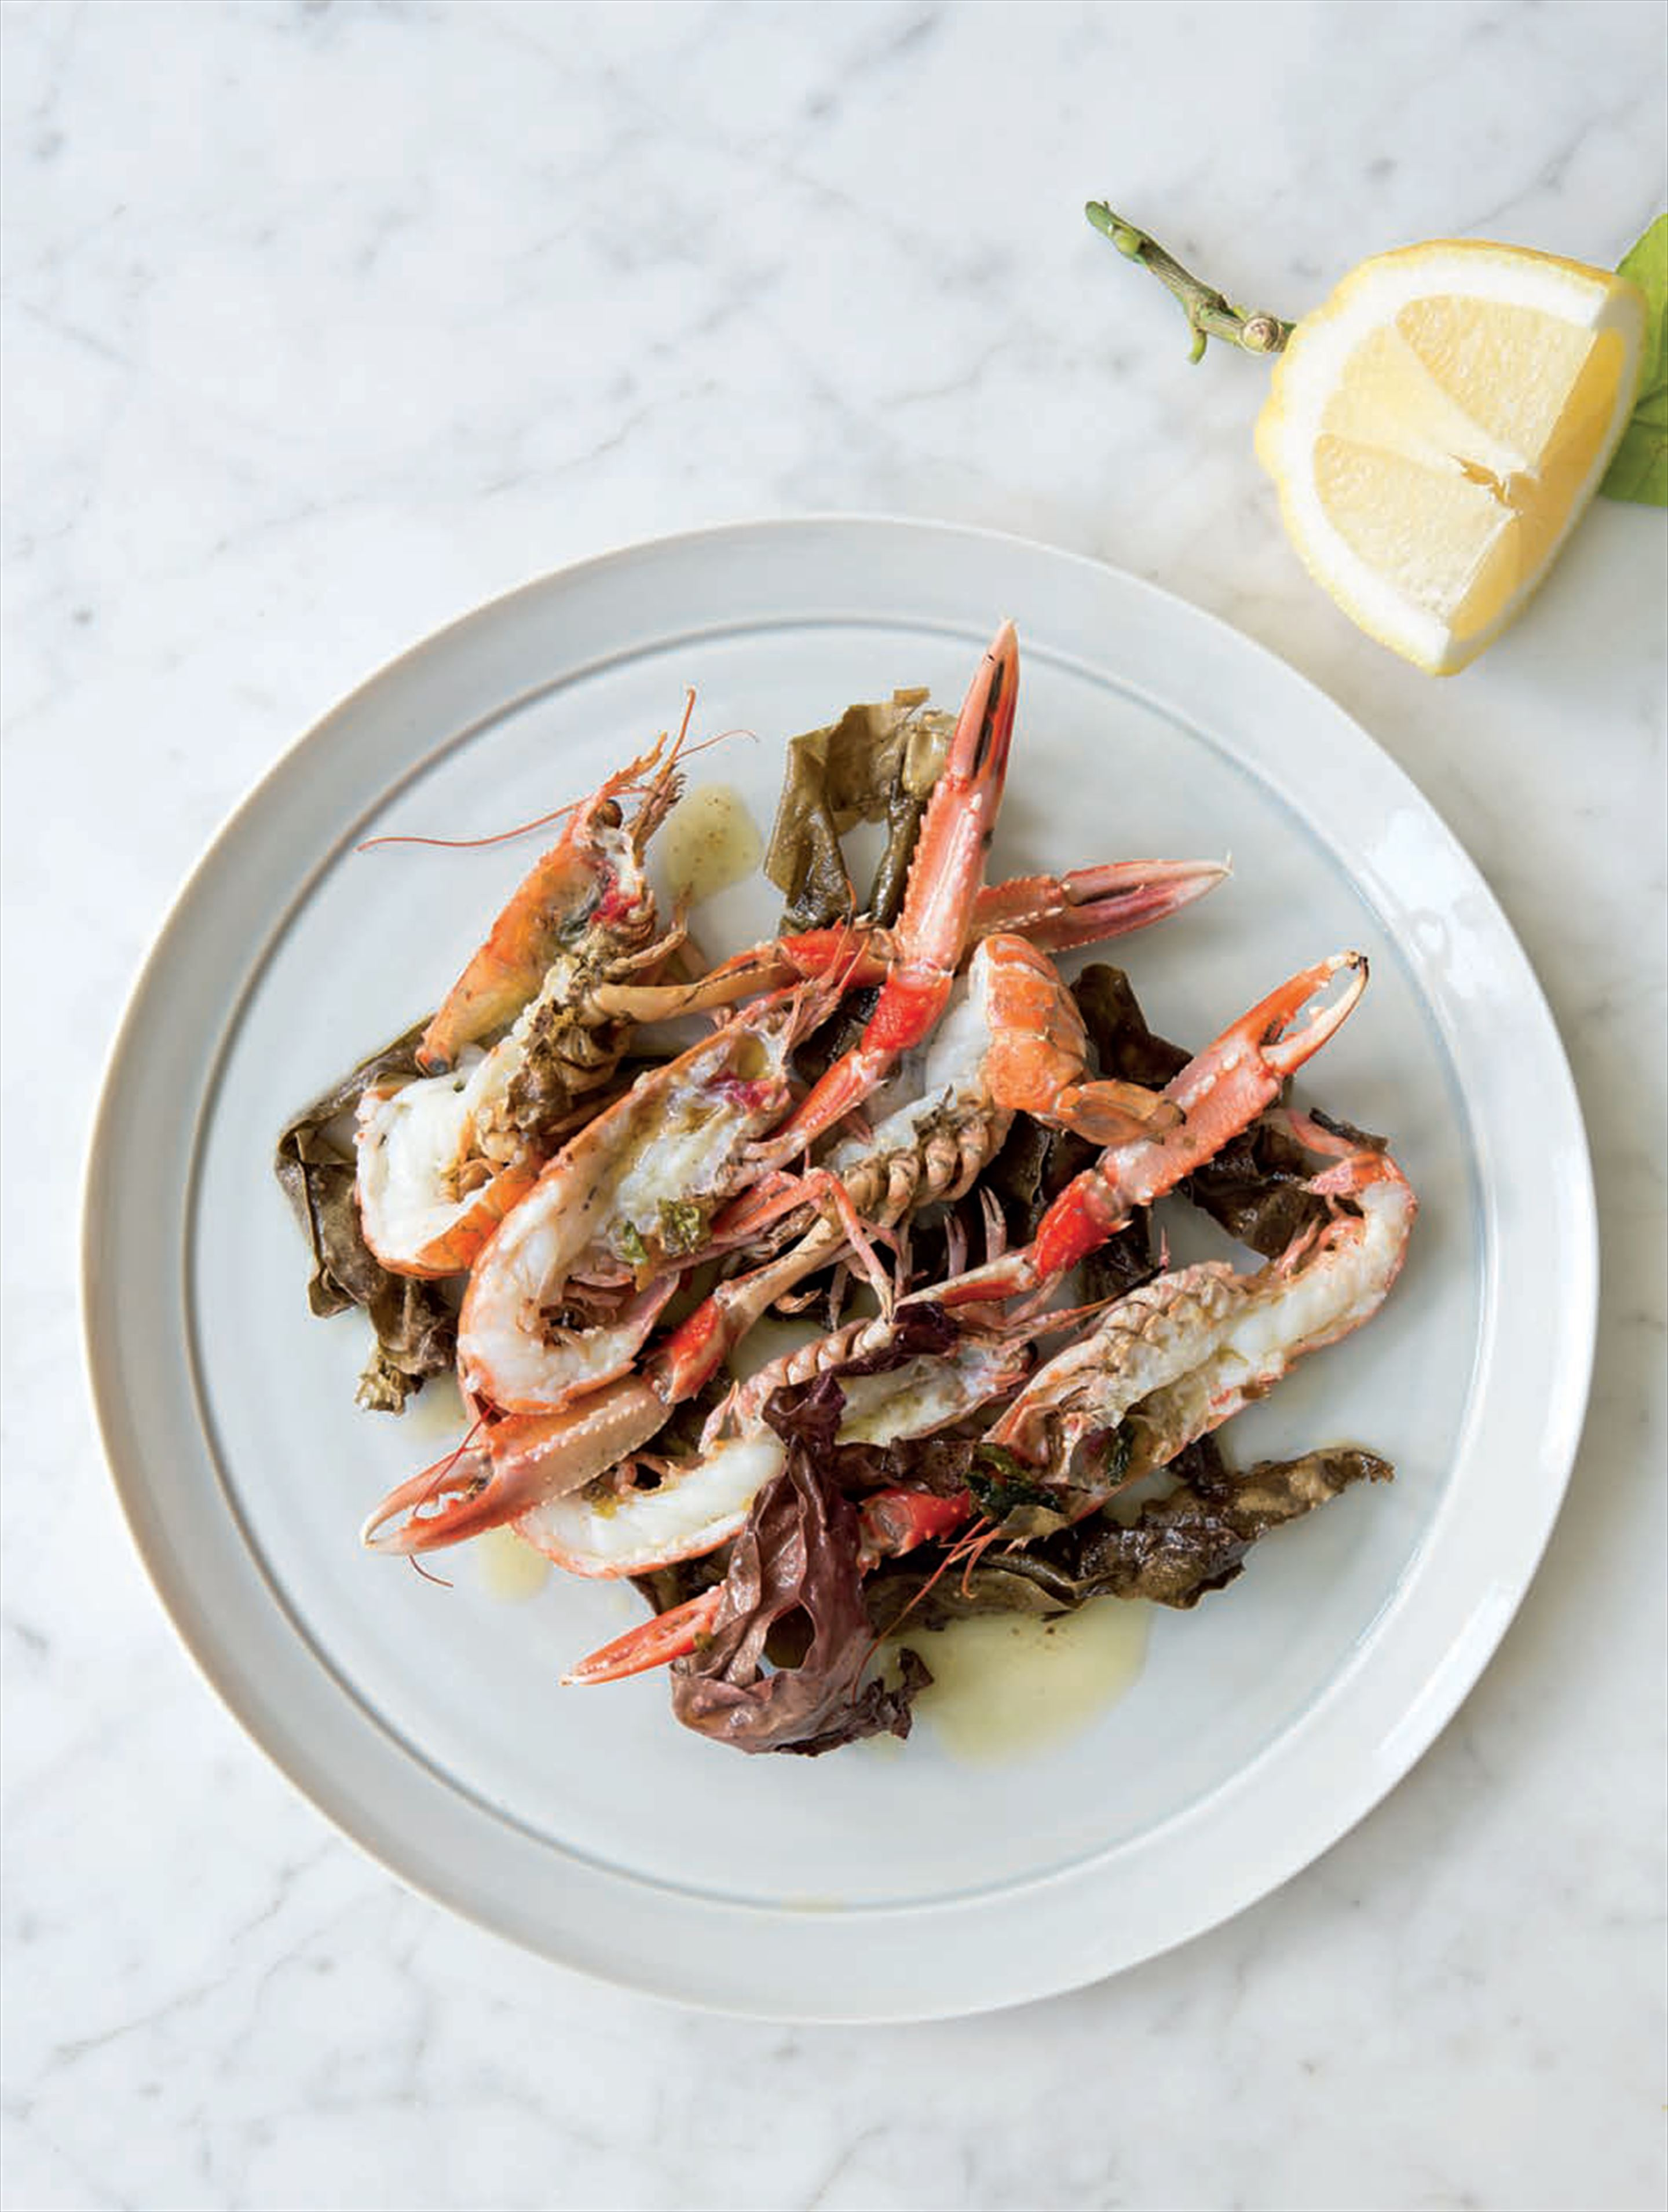 Grilled langoustine with seaweed butter